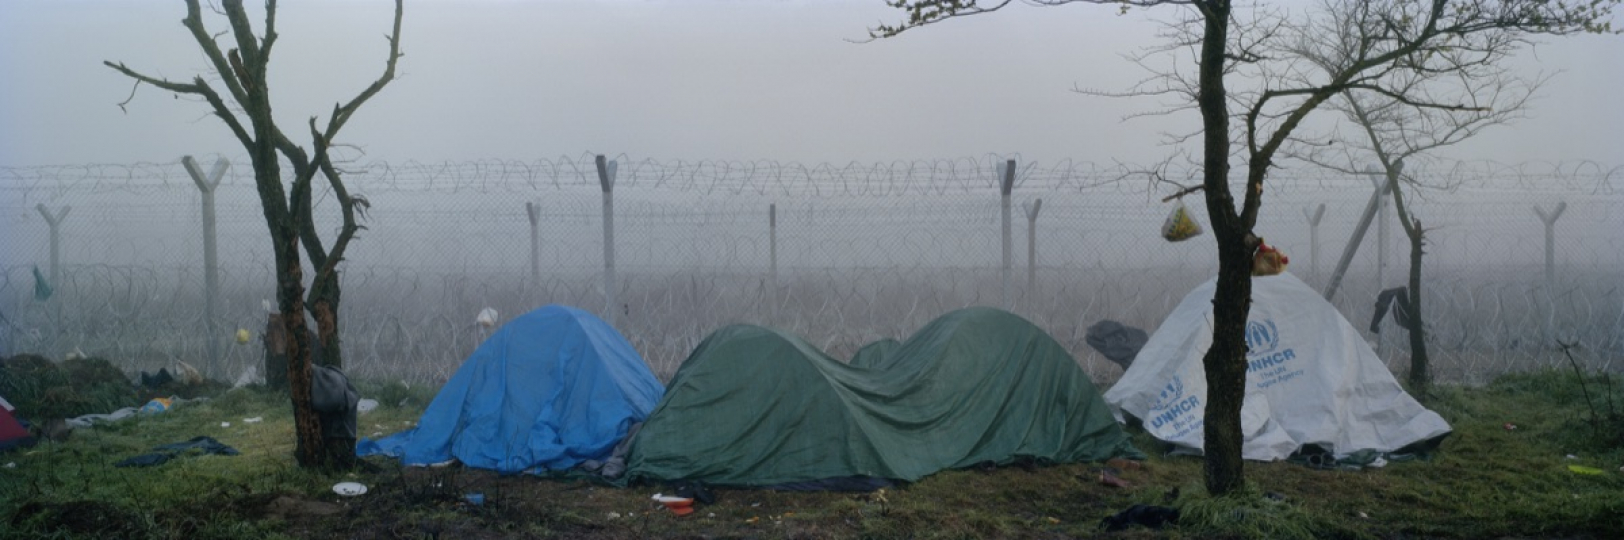 Tents of refugees in the early morning next to the Macedonian - Greek border in Idomeni, Greece. March 2016. © Kai Wiedenhöfer